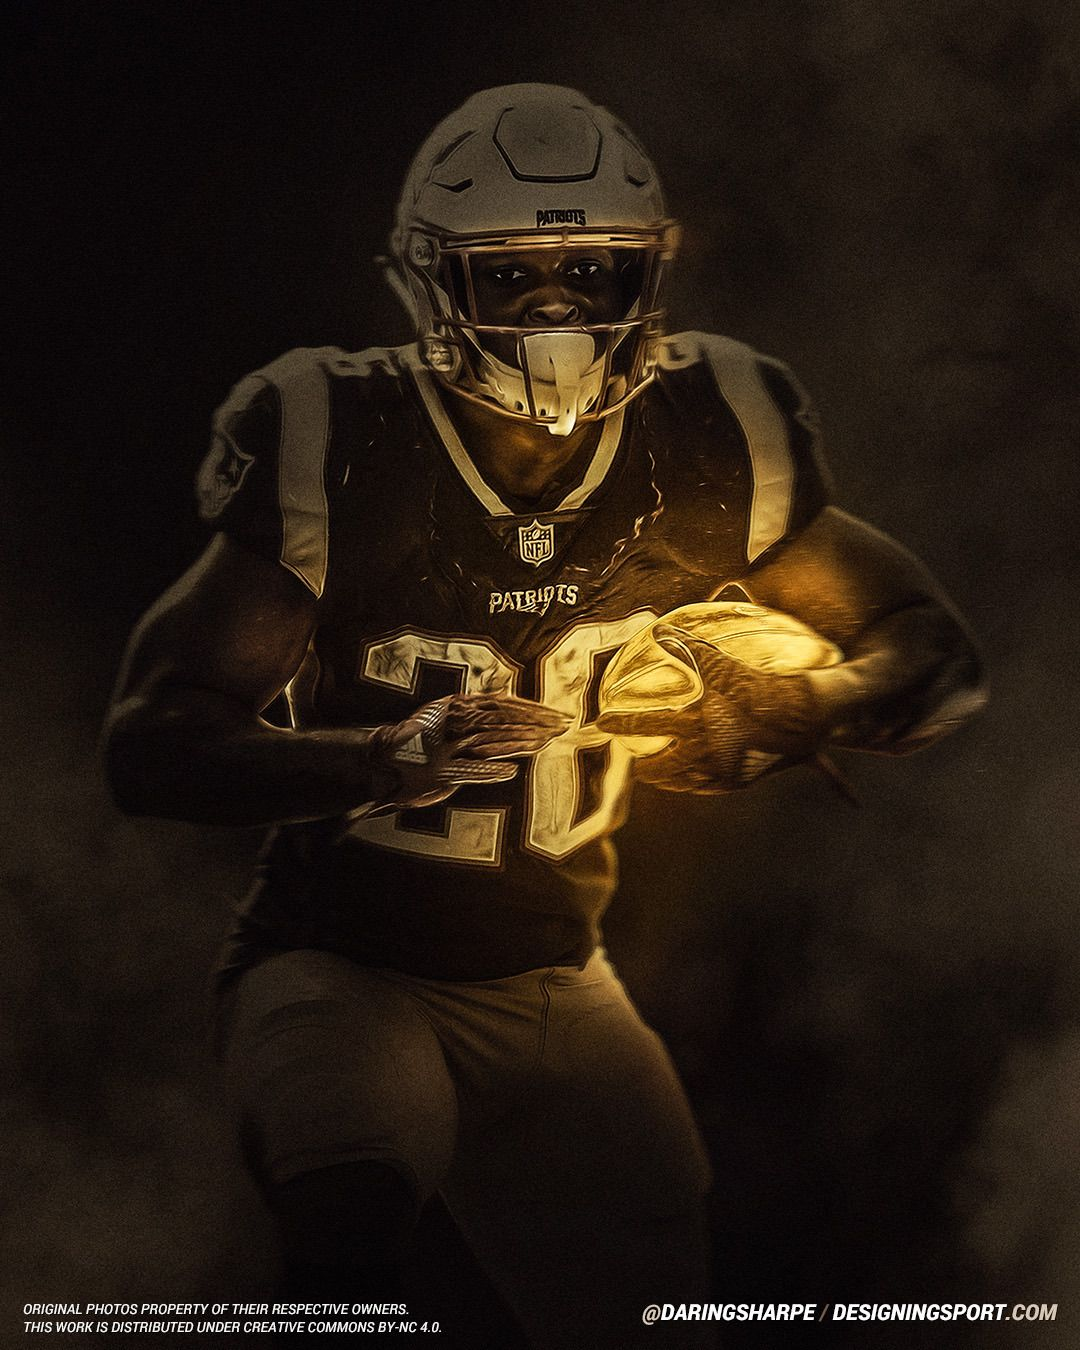 outlet store sale eb779 0295a Sony Michel, New England Patriots | Patriots | New England ...